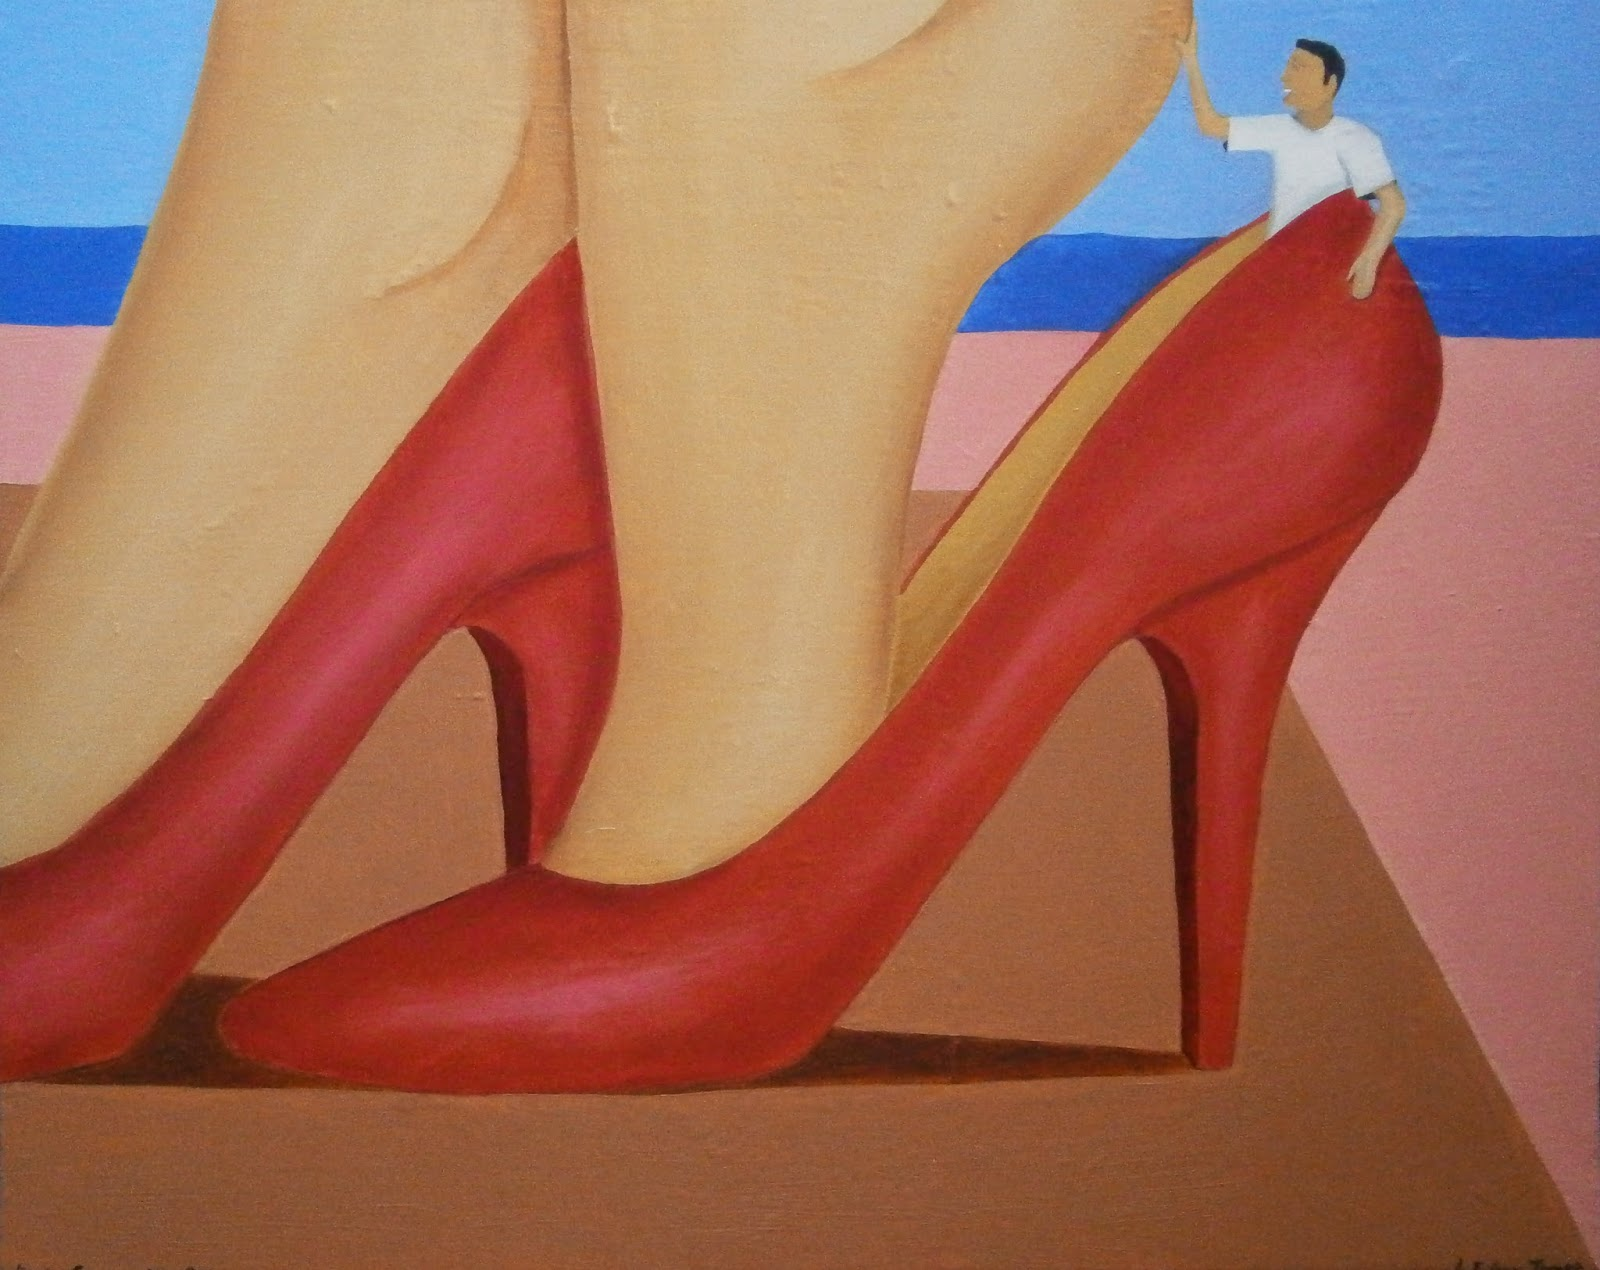 A woman putting on her red high heels with a little man caught inside